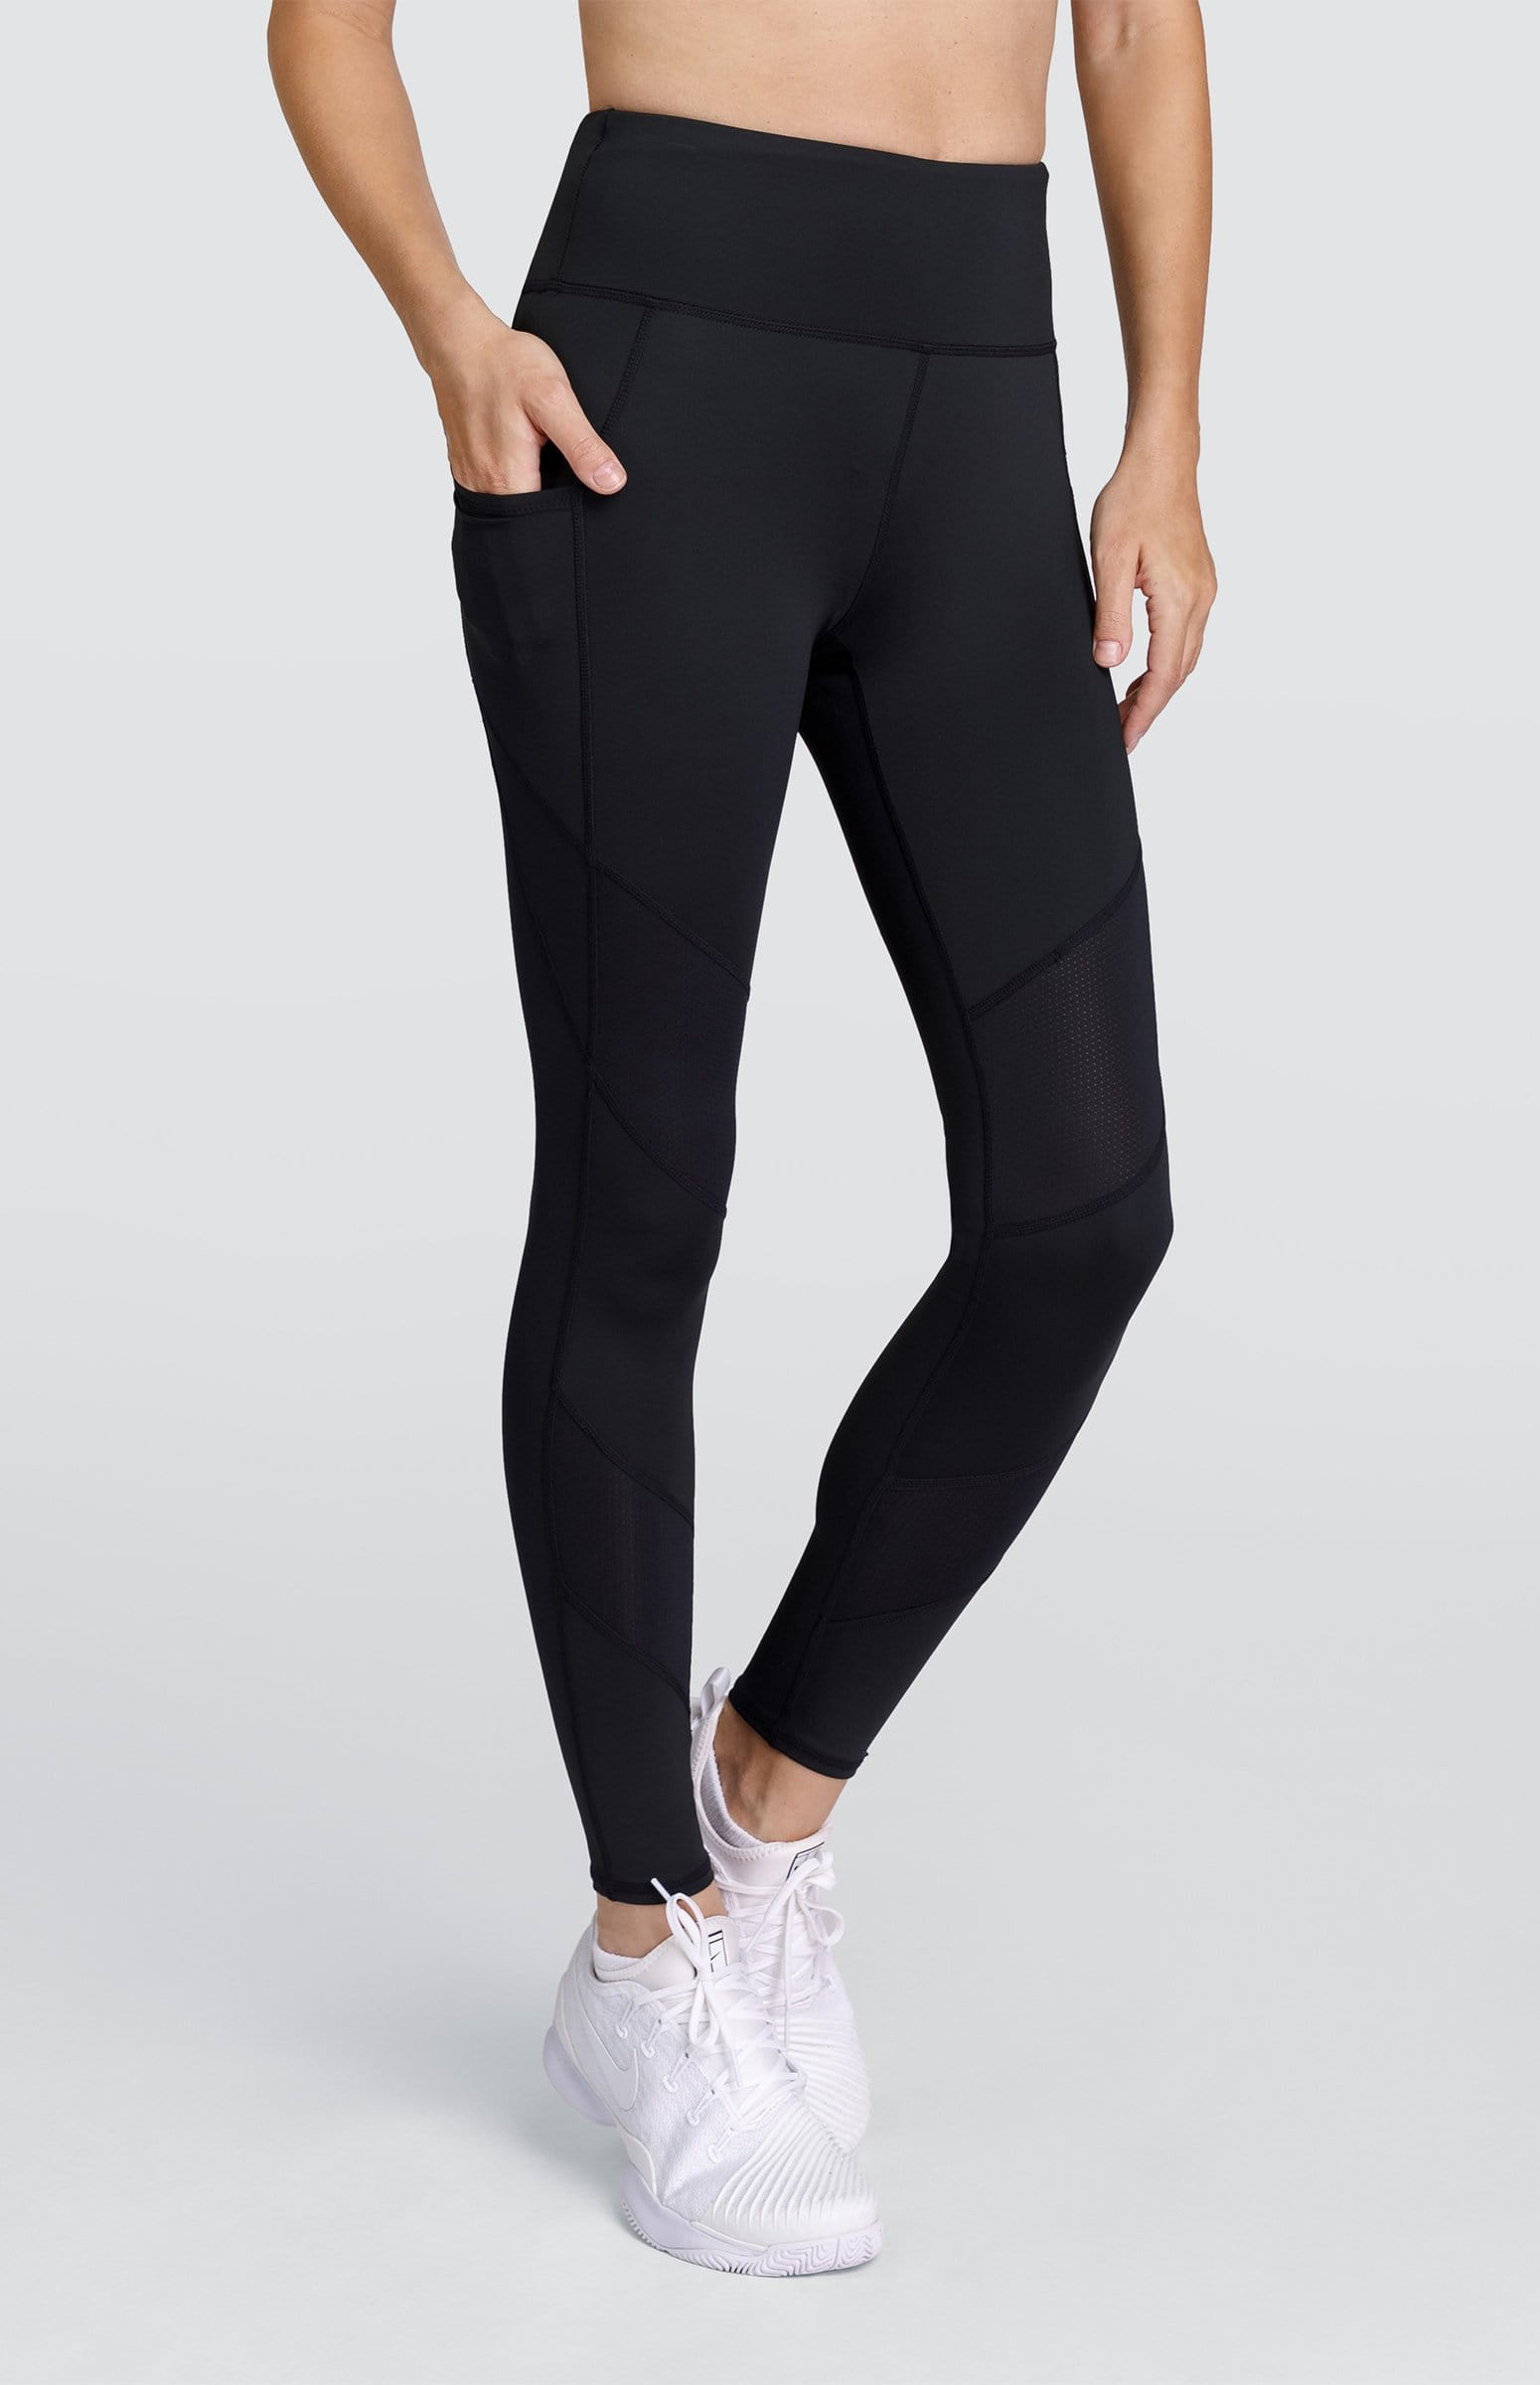 Kennedi Leggings - Black